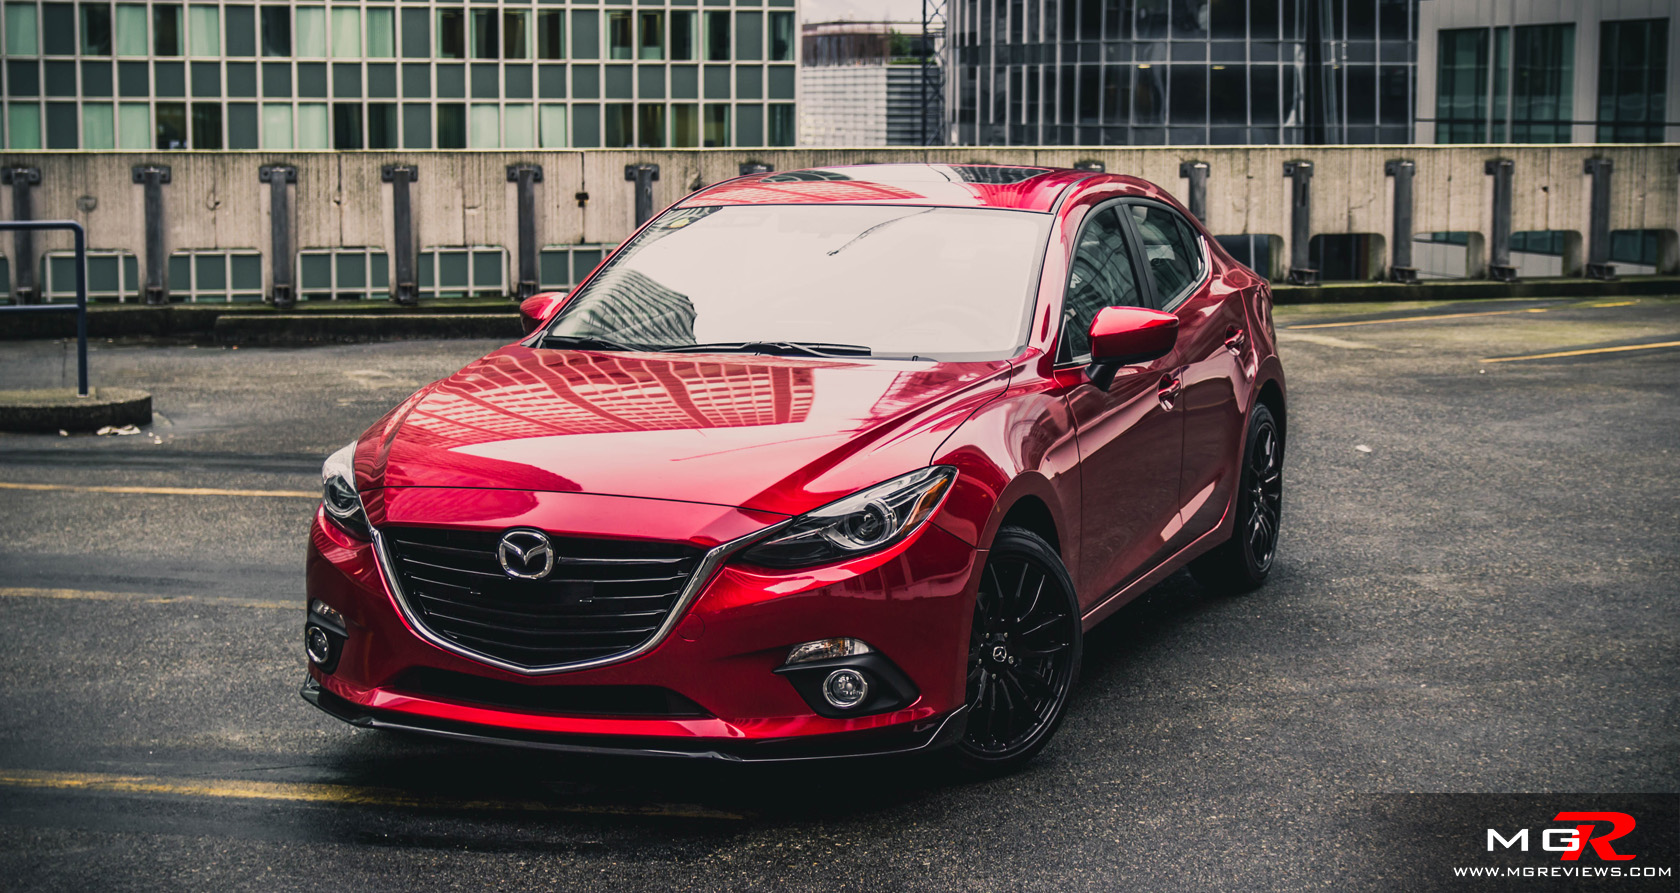 review: 2015 mazda 3 gt – m.g.reviews